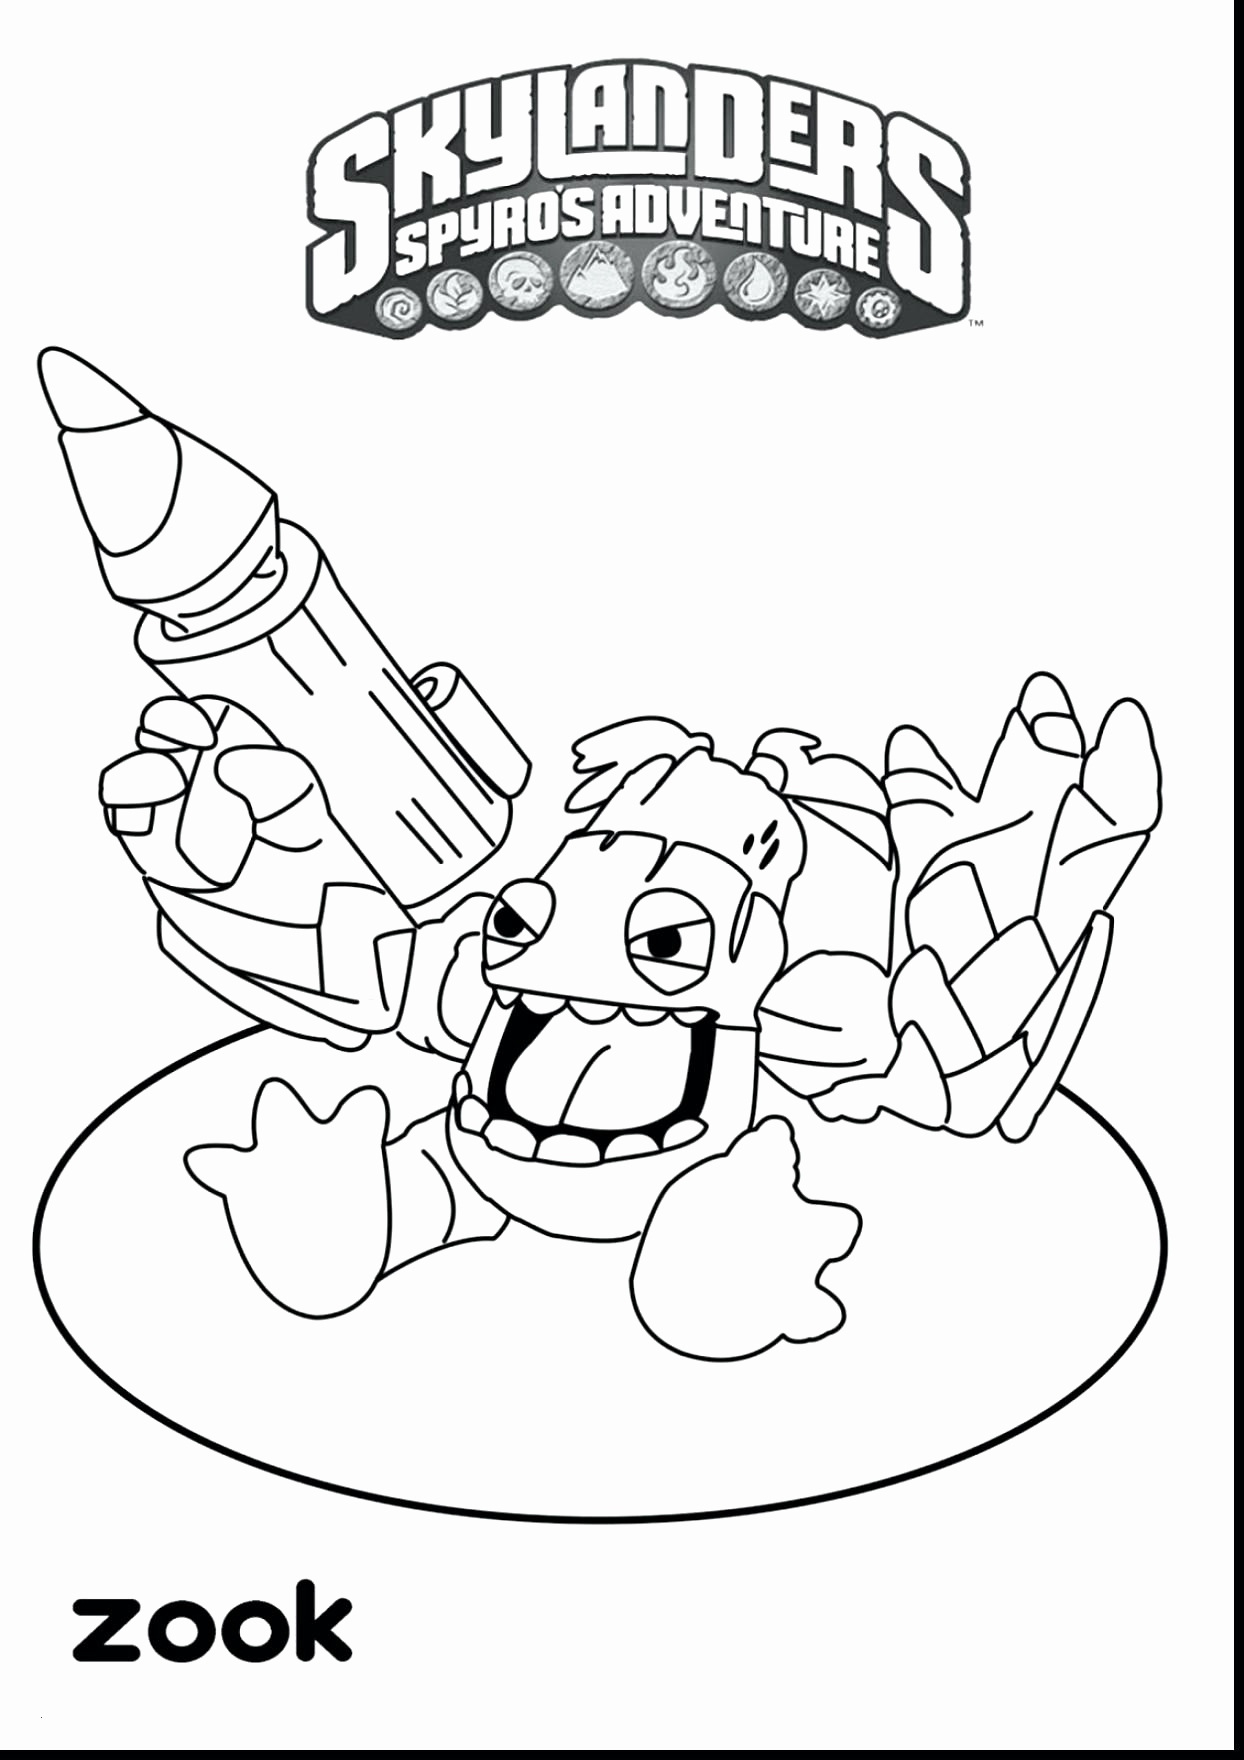 patriotic printable coloring pages Collection-Veteran Coloring Pages Veterans Day Coloring Pages Brilliant Freebie In Honor Veterans Day 2-h